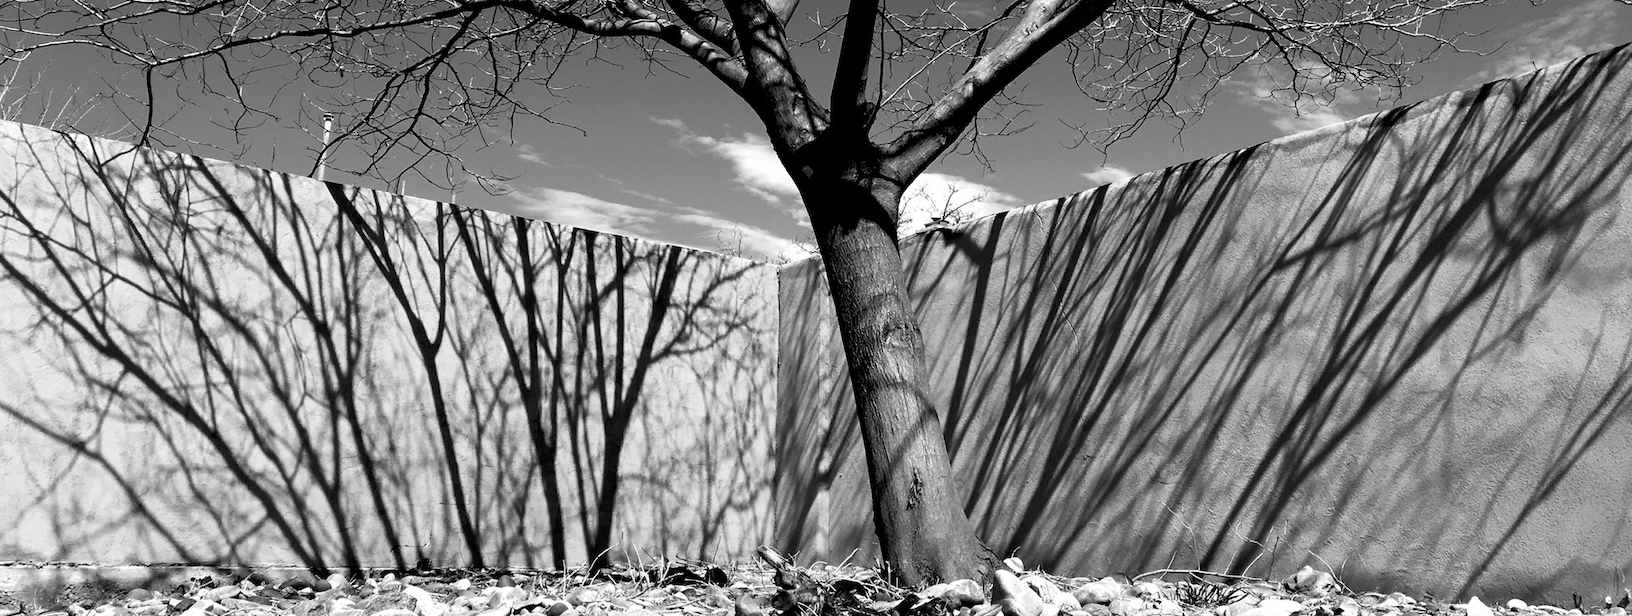 Dan Shaffer: Tree and Wall